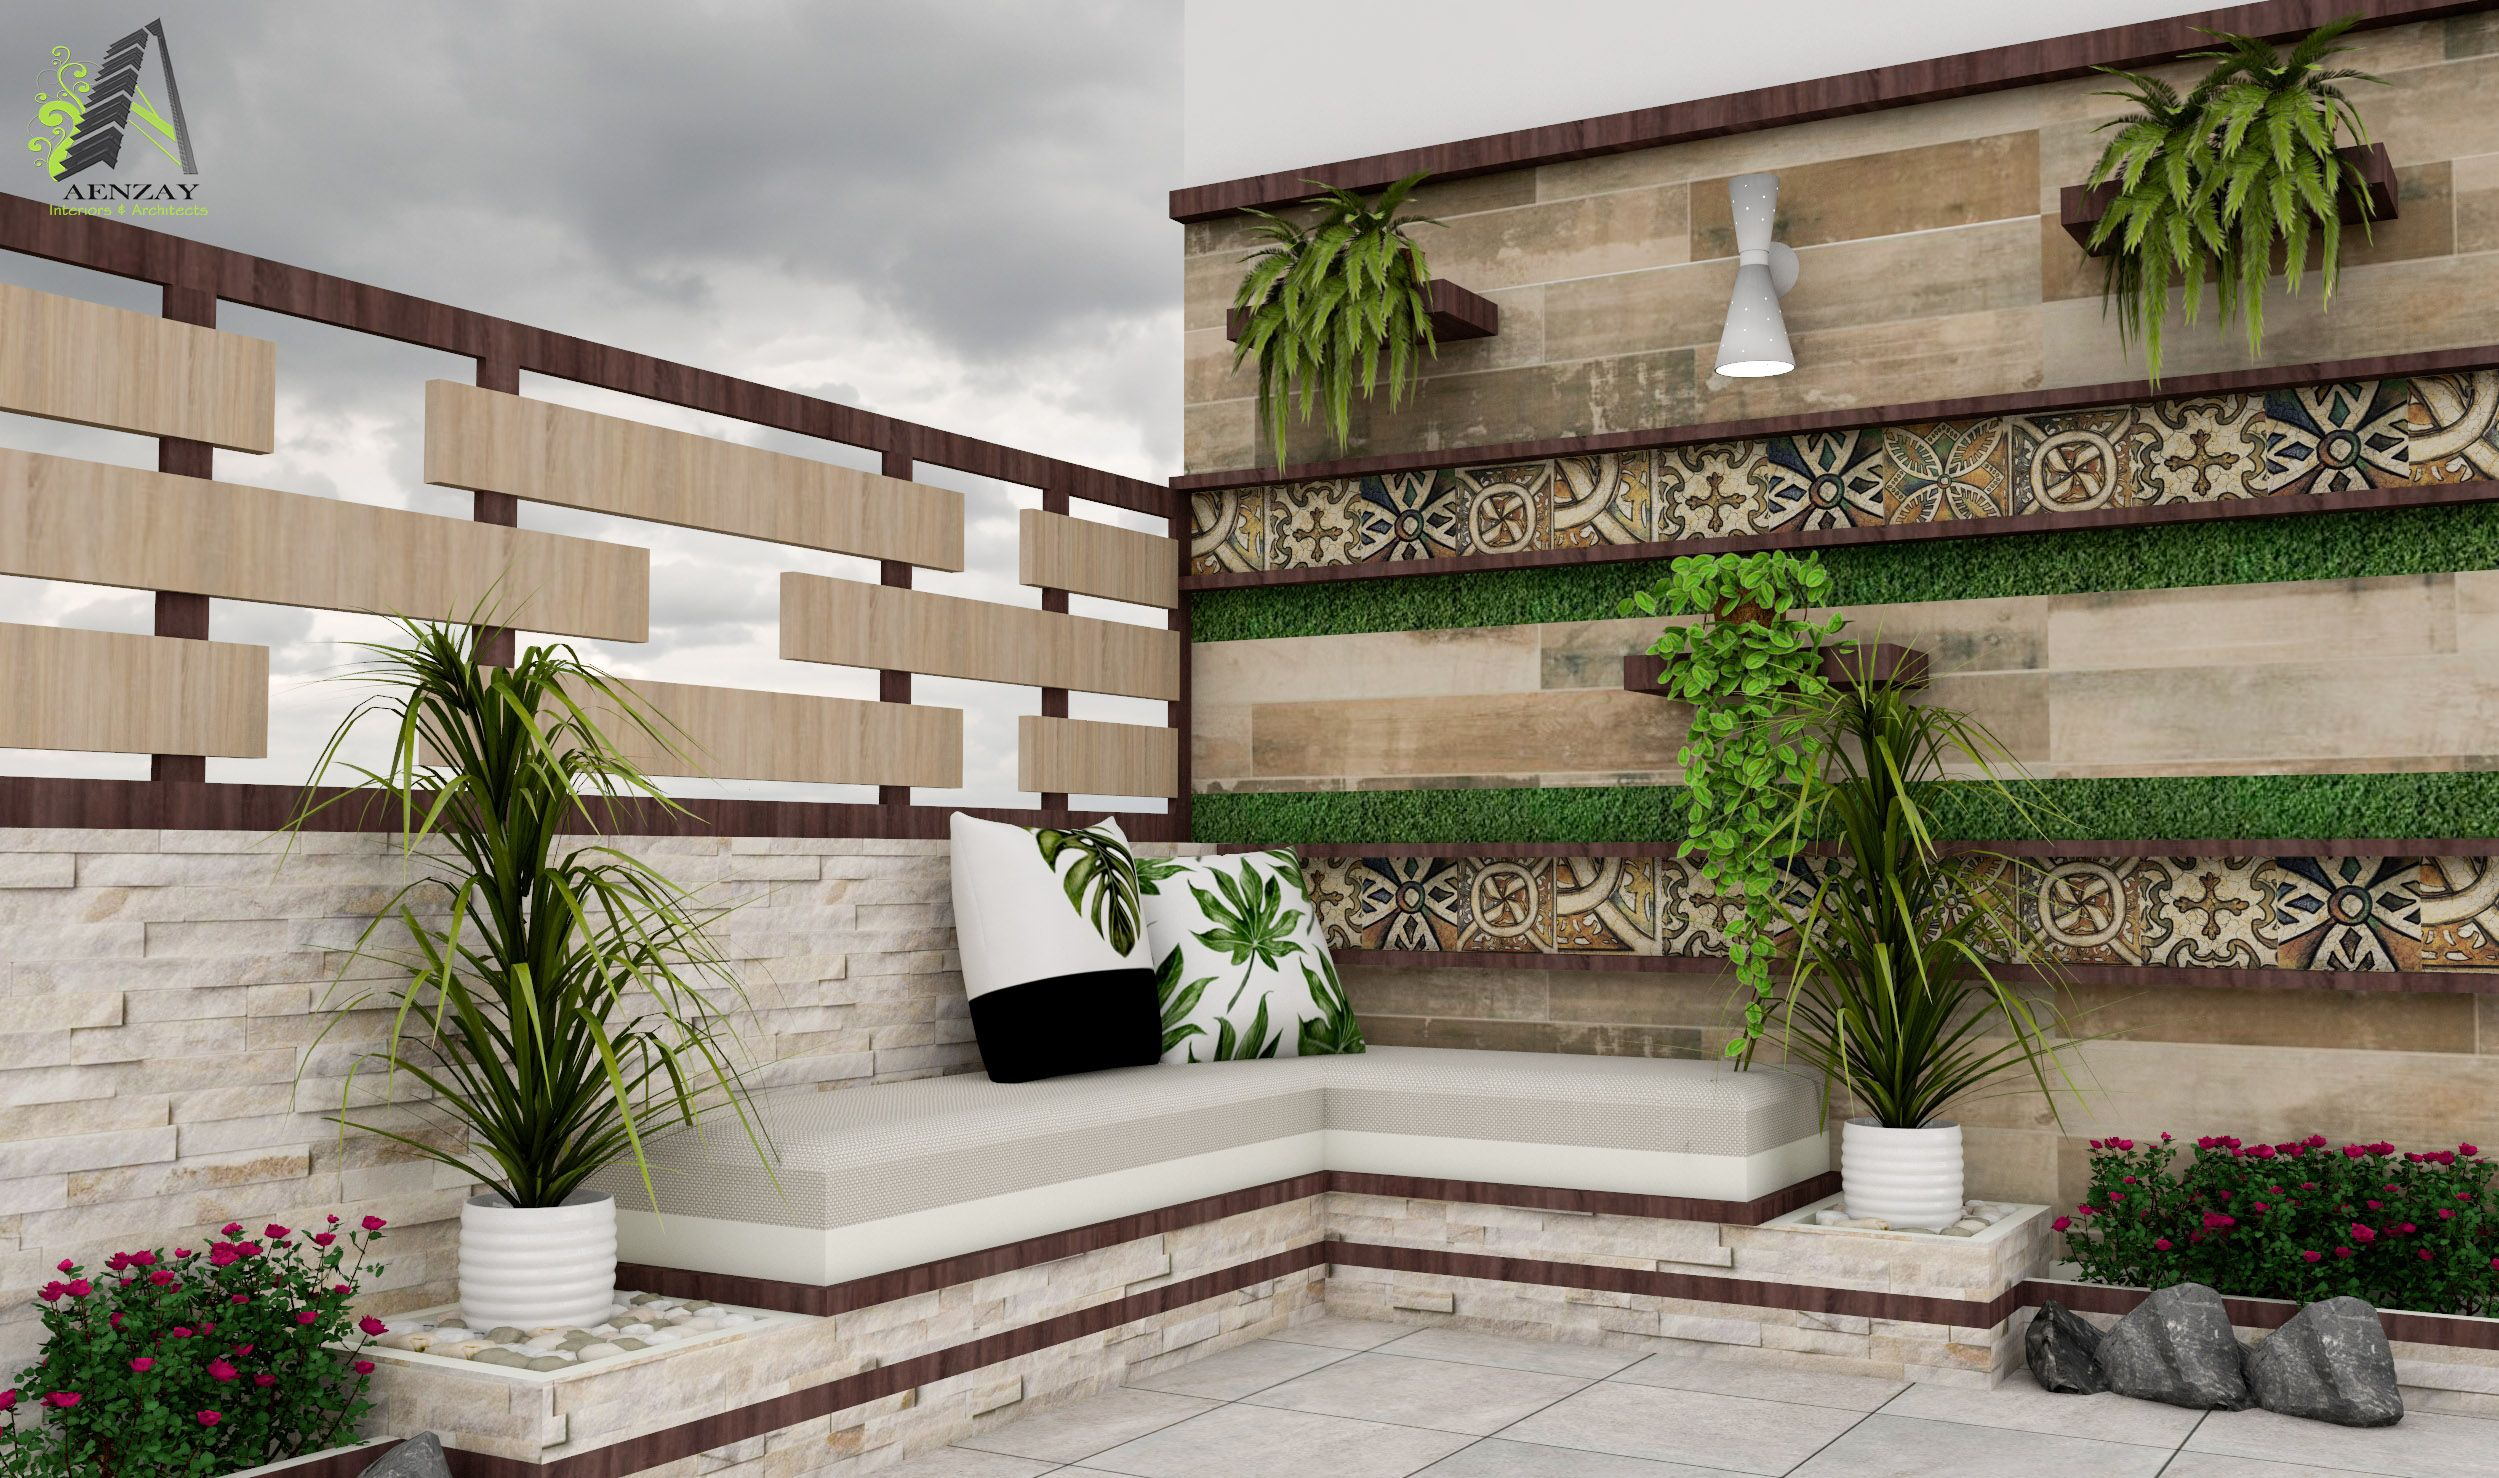 Terrace Design By Aenzay Interiors Architects Aenzay Is One Of The Top Construction Companies In Pakistan Terrace Design Interior Architect Best Architects